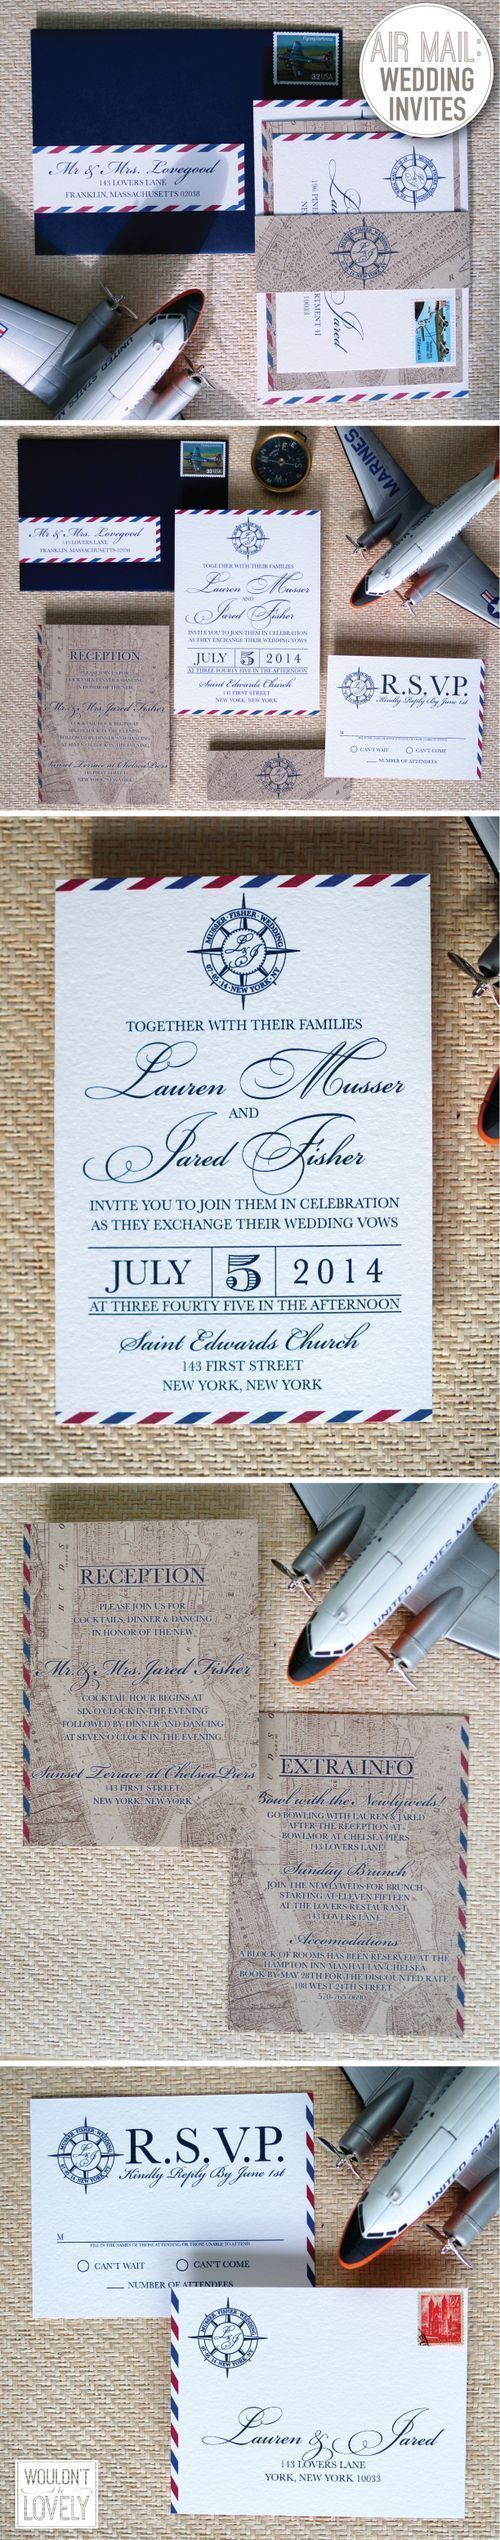 Air Mail Wedding Invitation Suite Red White And Blue Wedding